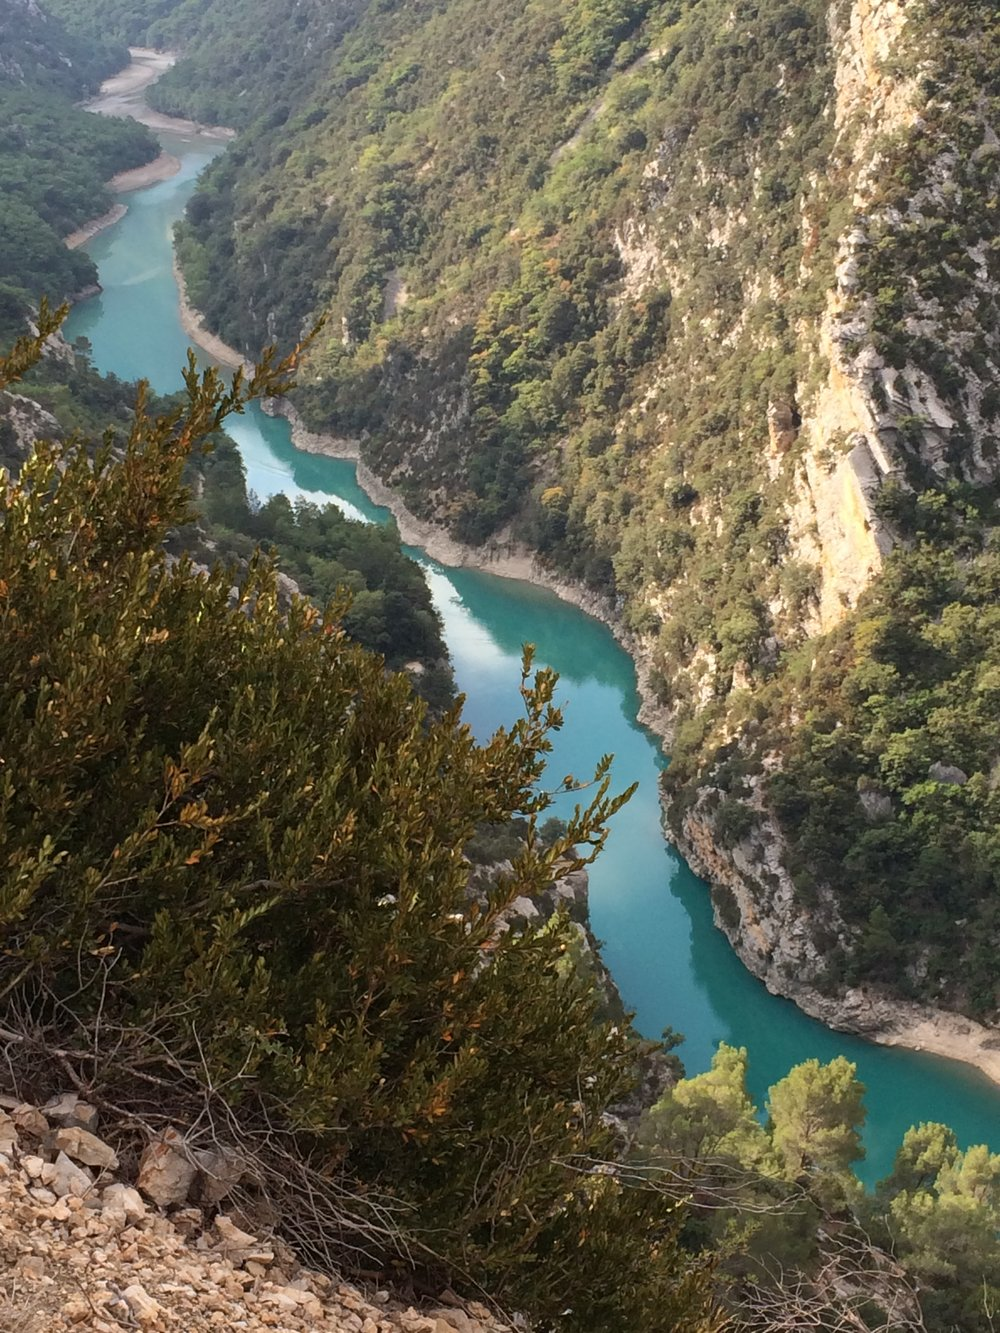 The awesome Gorges du Verdon. View from one of our cycling routes.